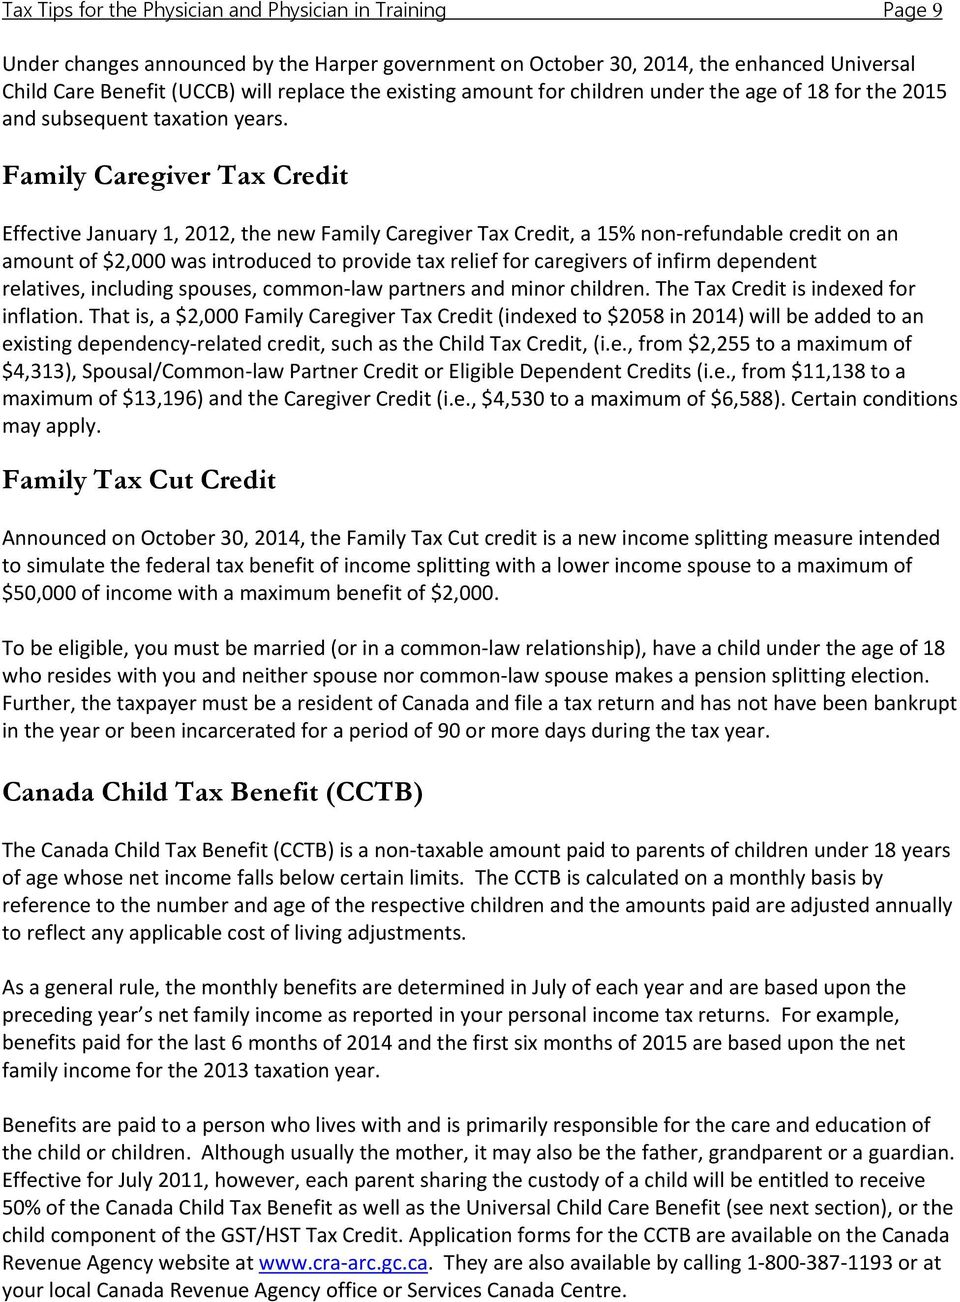 Family Caregiver Tax Credit Effective January 1, 2012, the new Family Caregiver Tax Credit, a 15% non refundable credit on an amount of $2,000 was introduced to provide tax relief for caregivers of